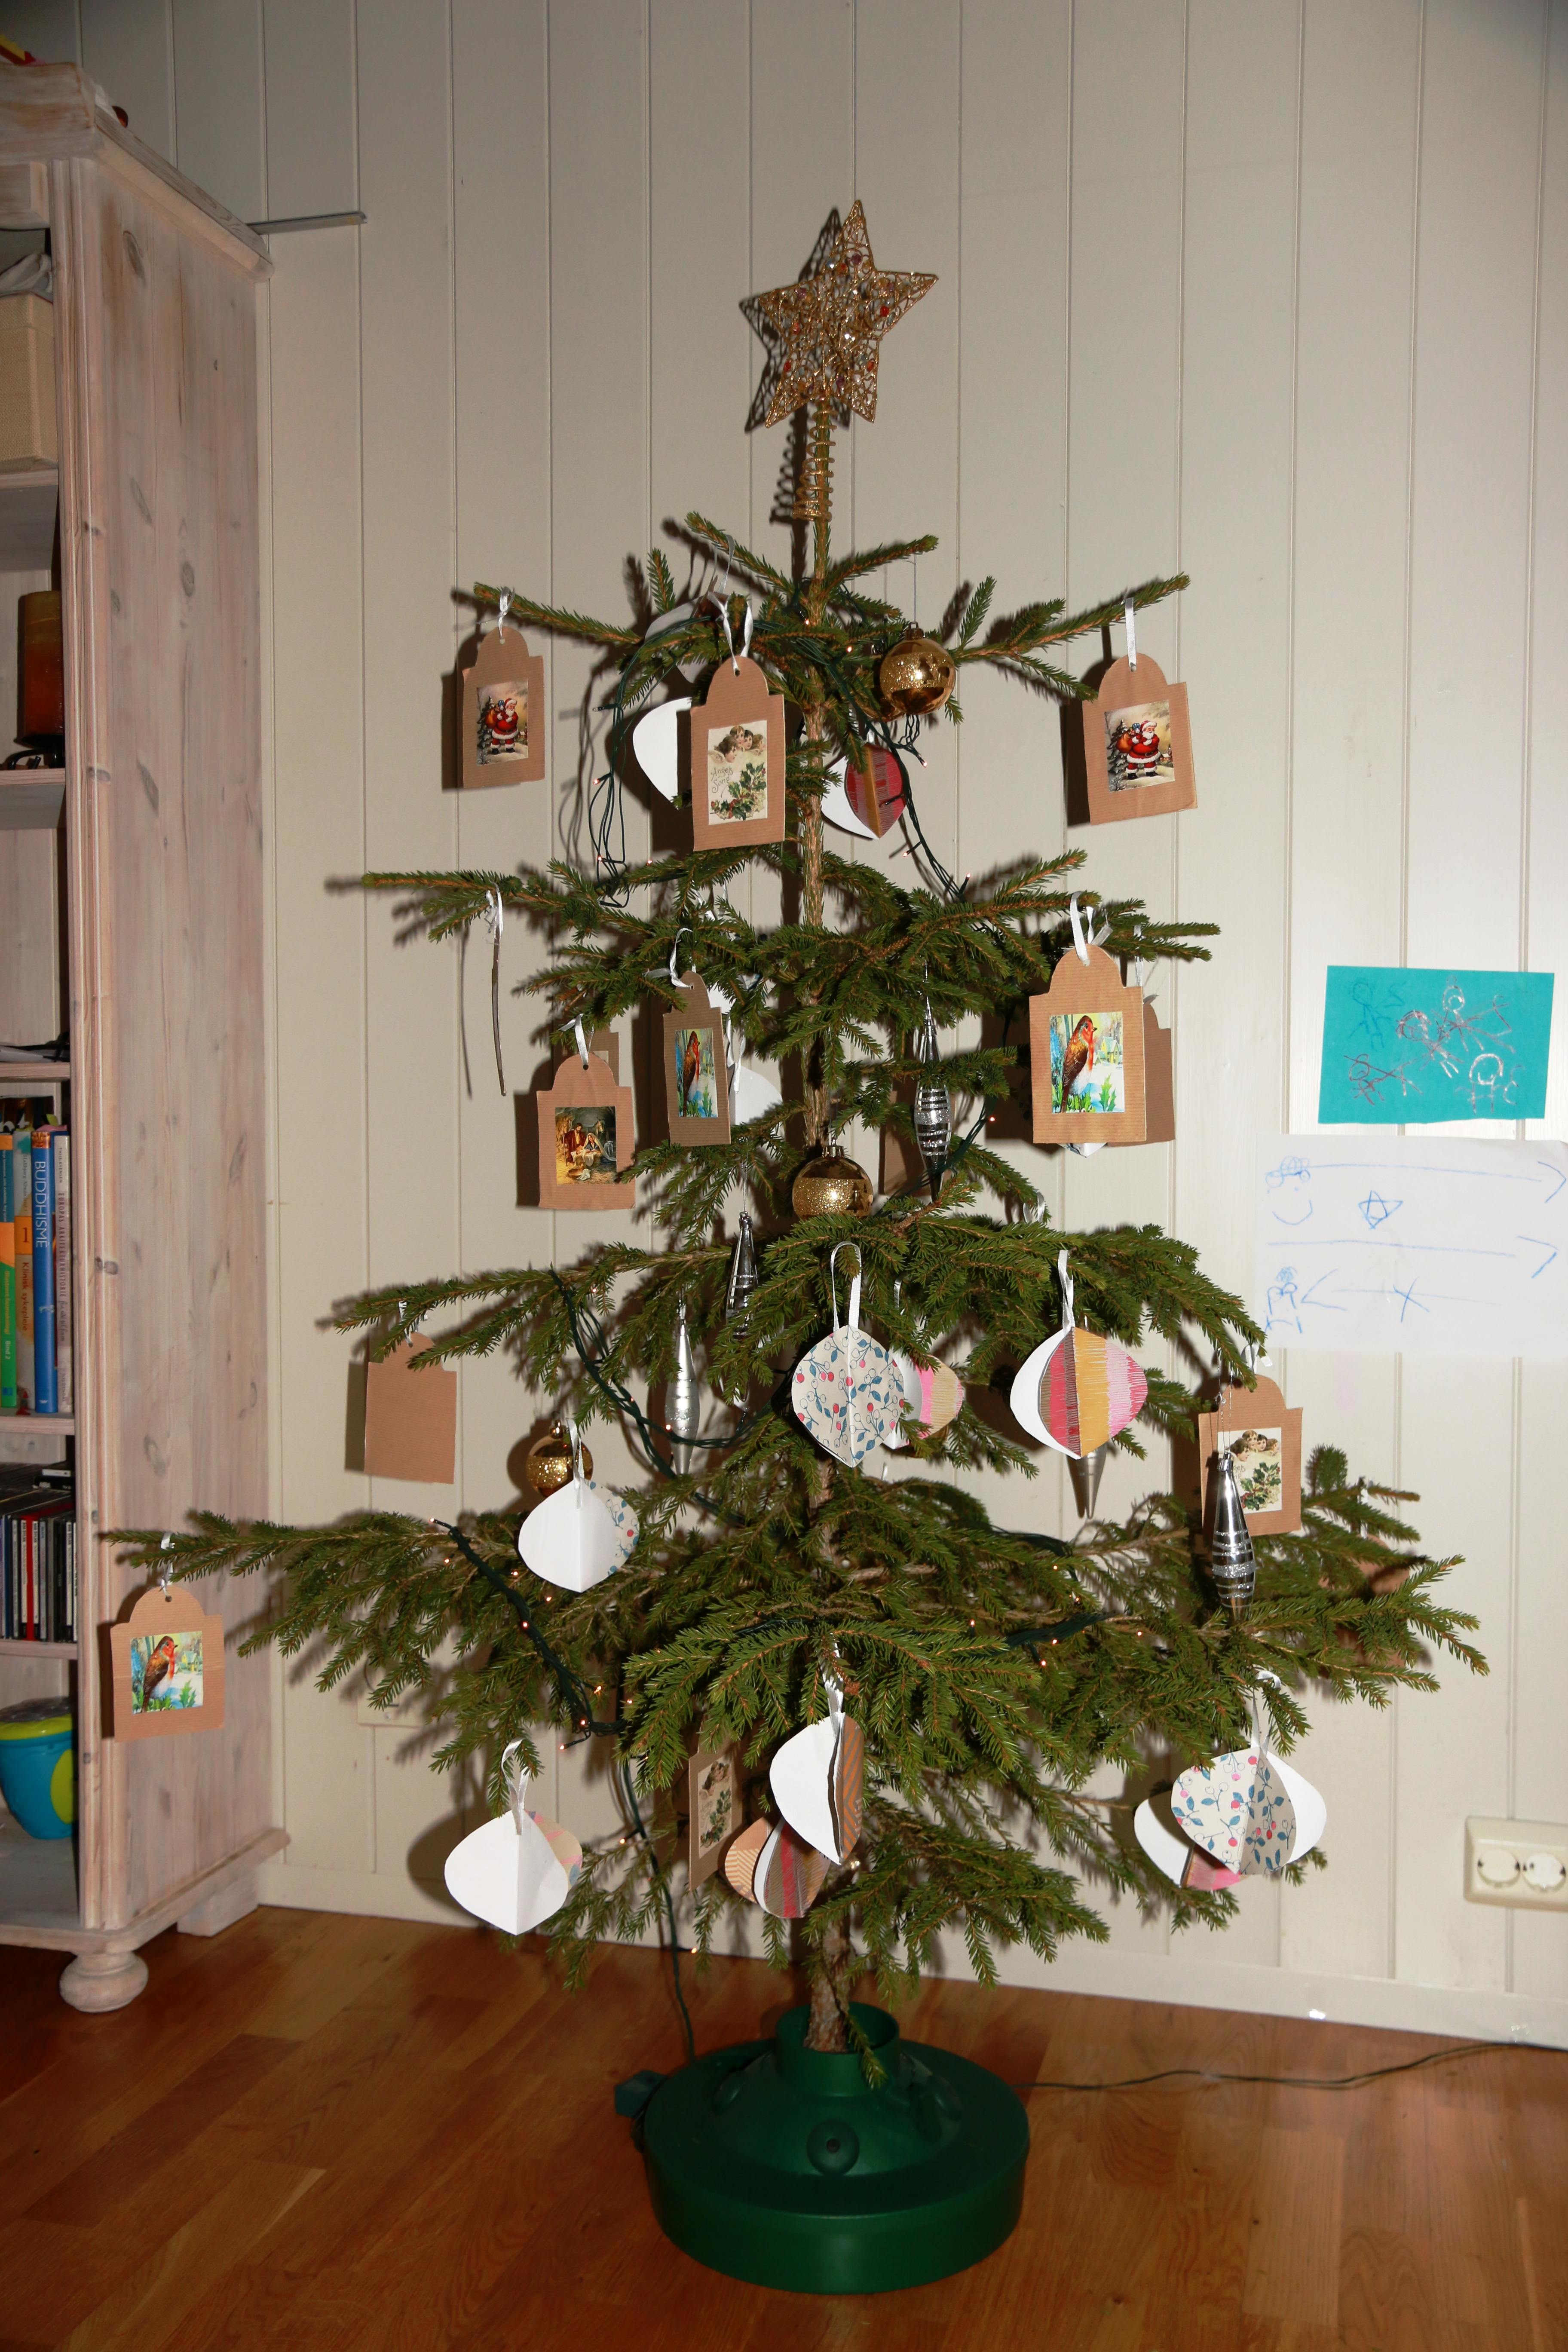 File:Juletre Christmas tree from native Norwegian spruce.jpg ...